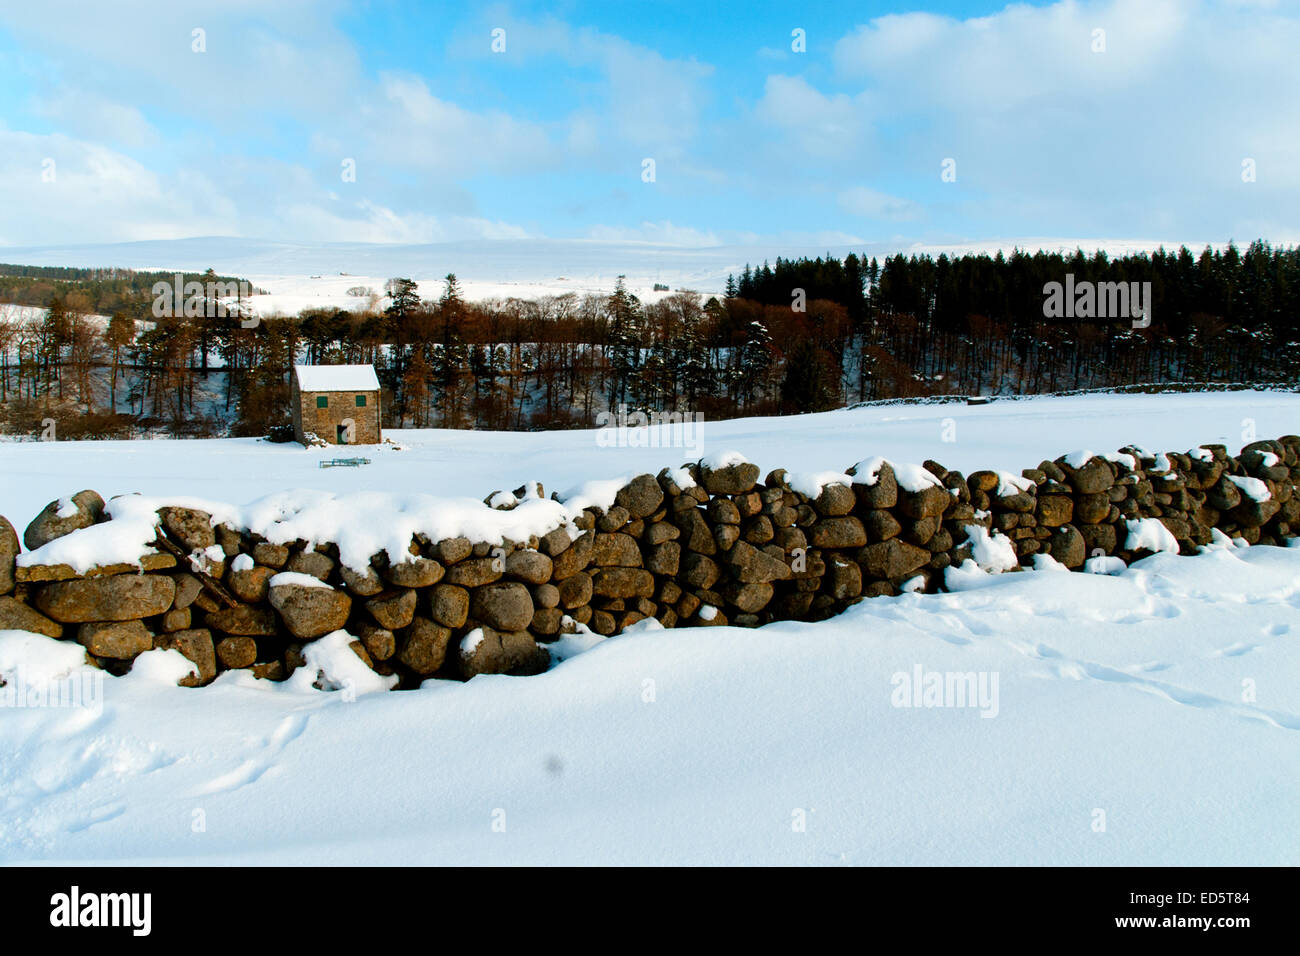 Teesdale under 12' of snow as seen some 8 miles from Middleton in Teesdale in County Durham. Teesdale Canvas. - Stock Image